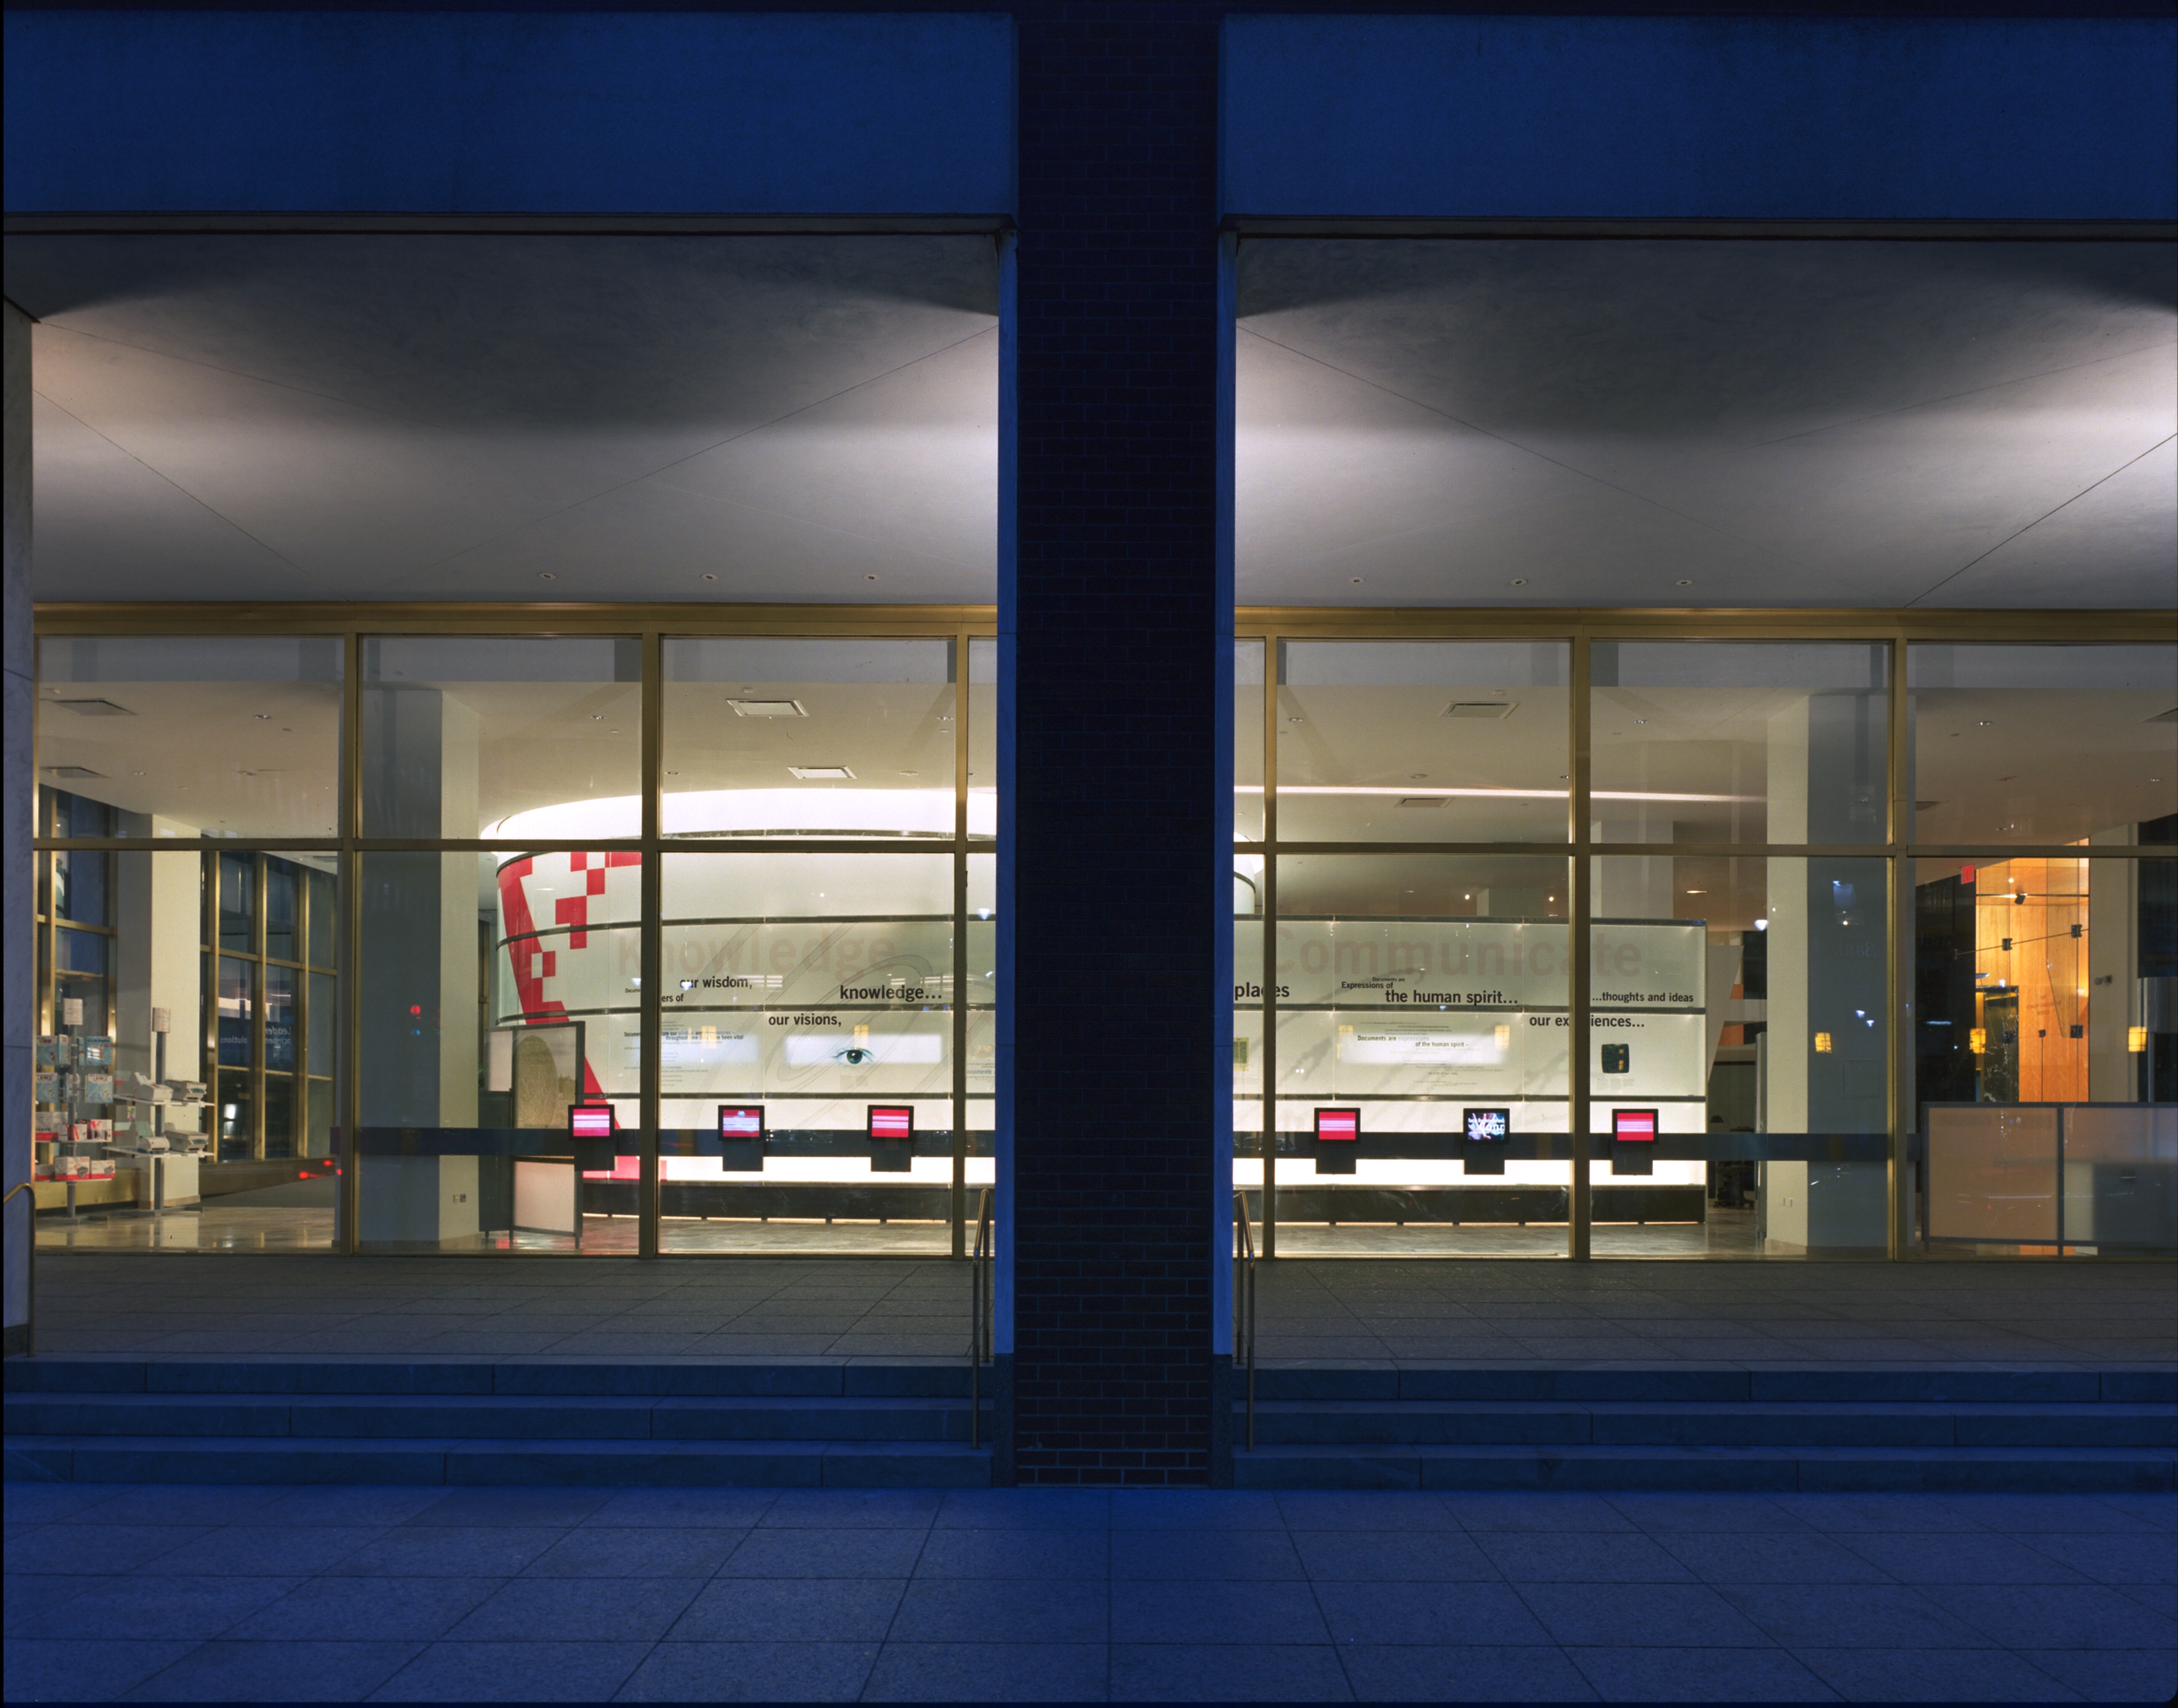 The exterior of the showroom; a series of video screens along the exterior window introduce visitors to the new way of thinking about documents: video snippets of musicians, ballerinas, artists and such at work. Videos were triggered by motion sensors.